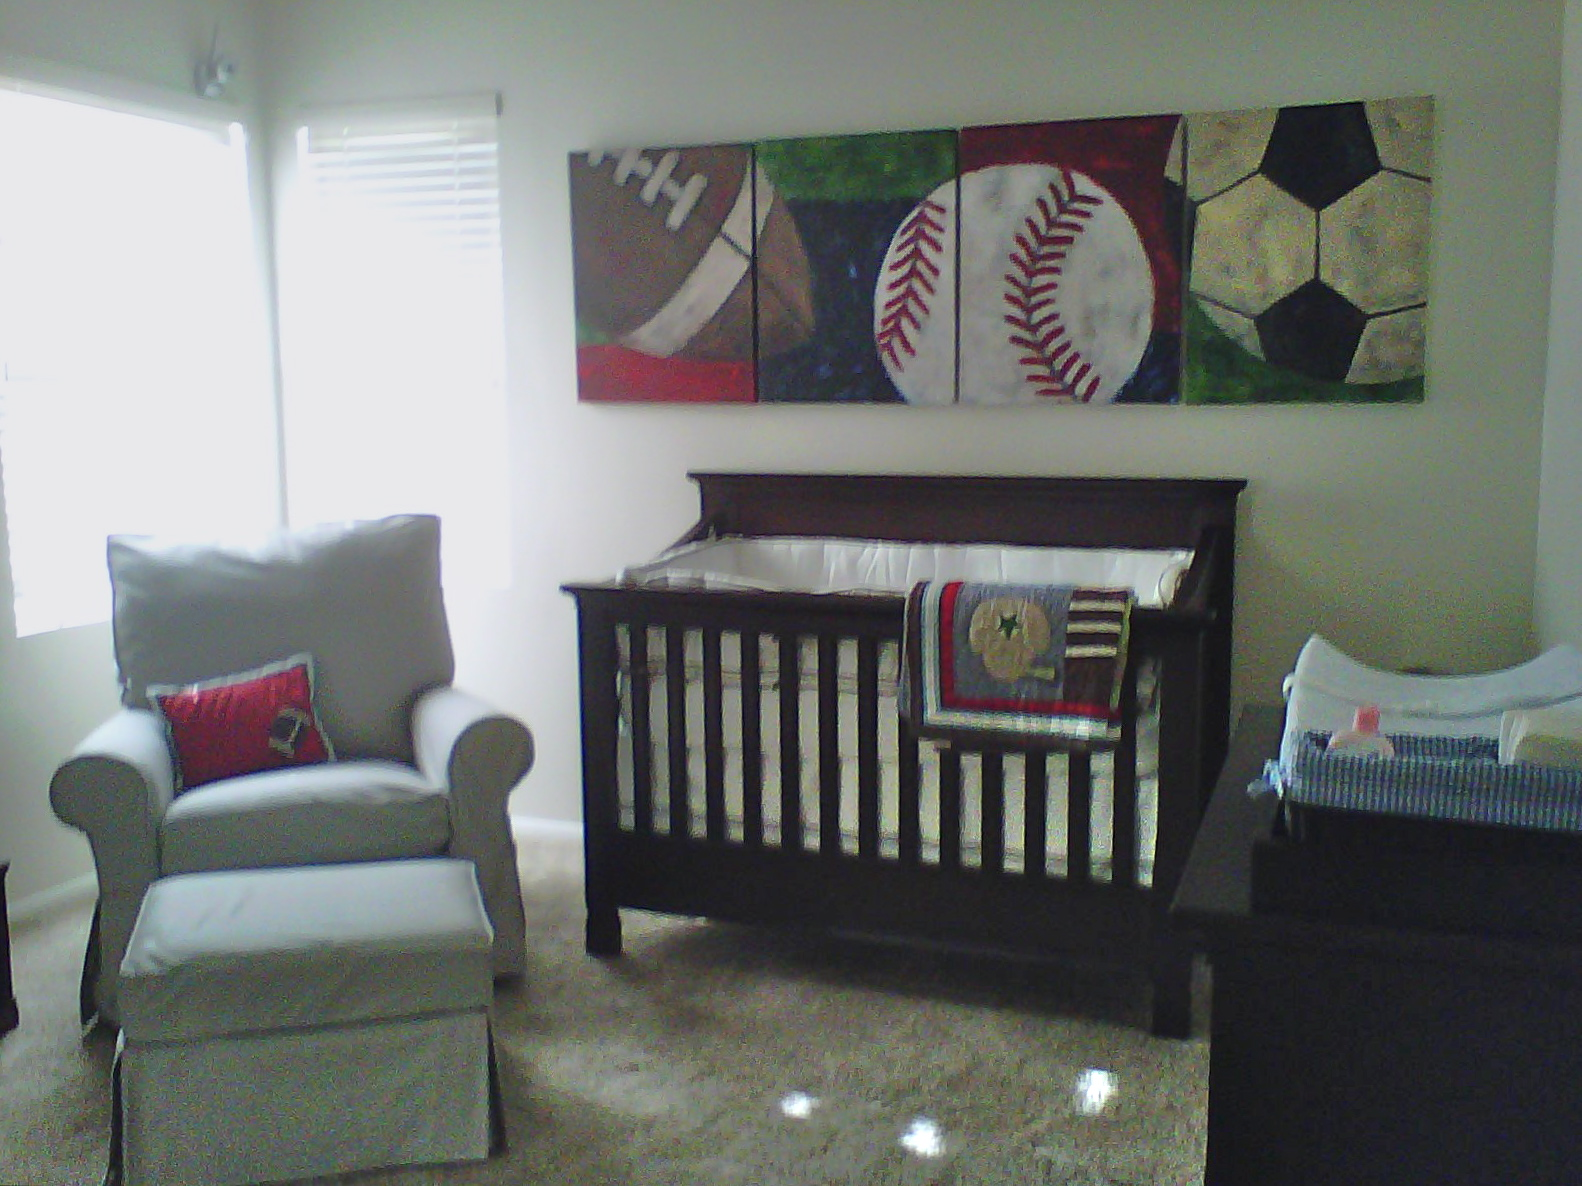 Dear Weekend: My Client's Sports Themed Nursery